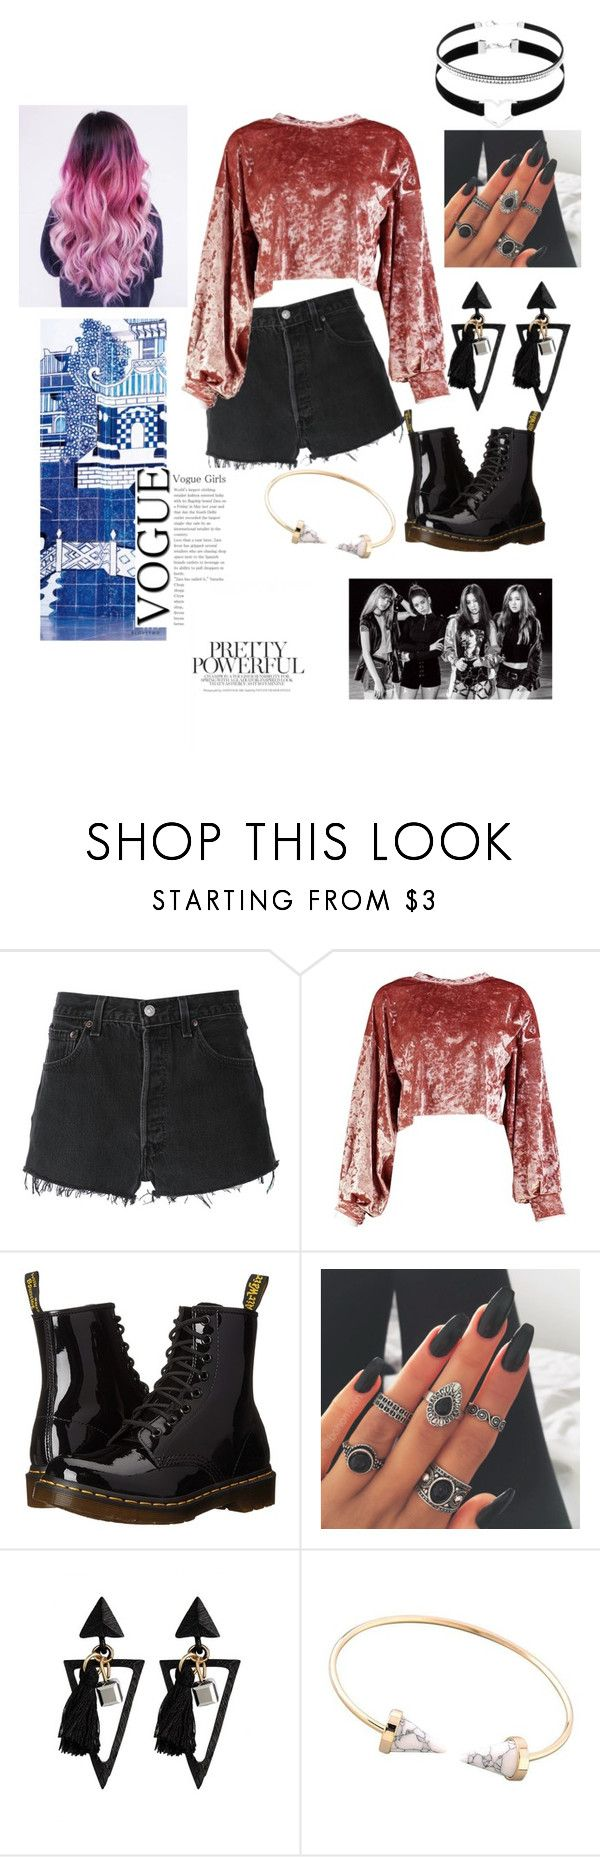 """""""blackpink whistle outfit """" by aholabeth on Polyvore featuring RE/DONE, Boohoo and Dr. Martens"""